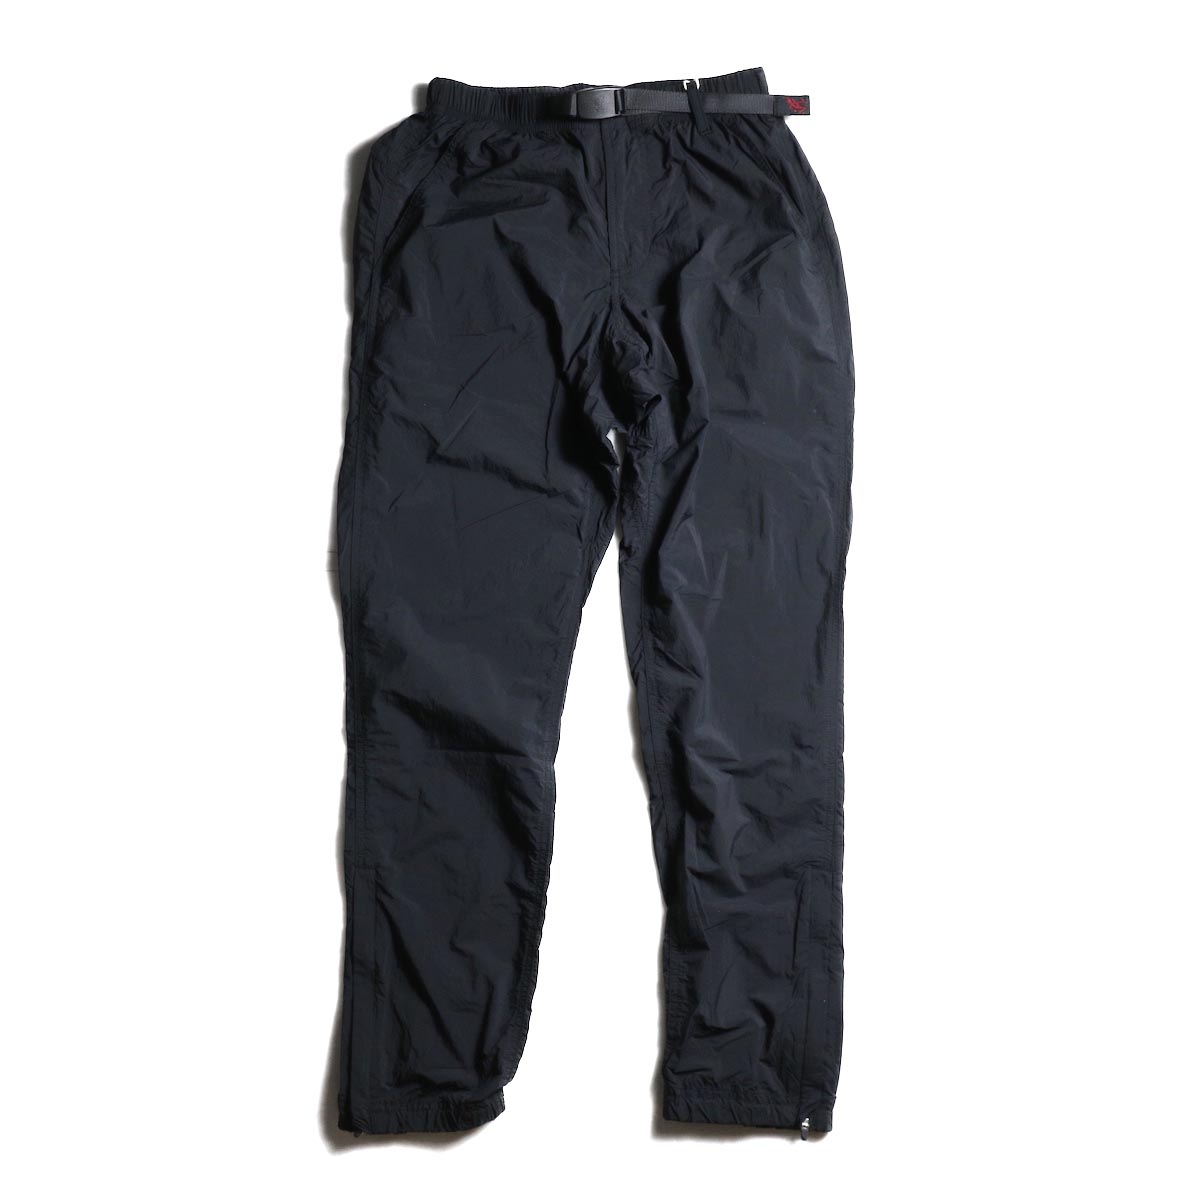 GRAMICCI / Packable Truck Pants (Black)